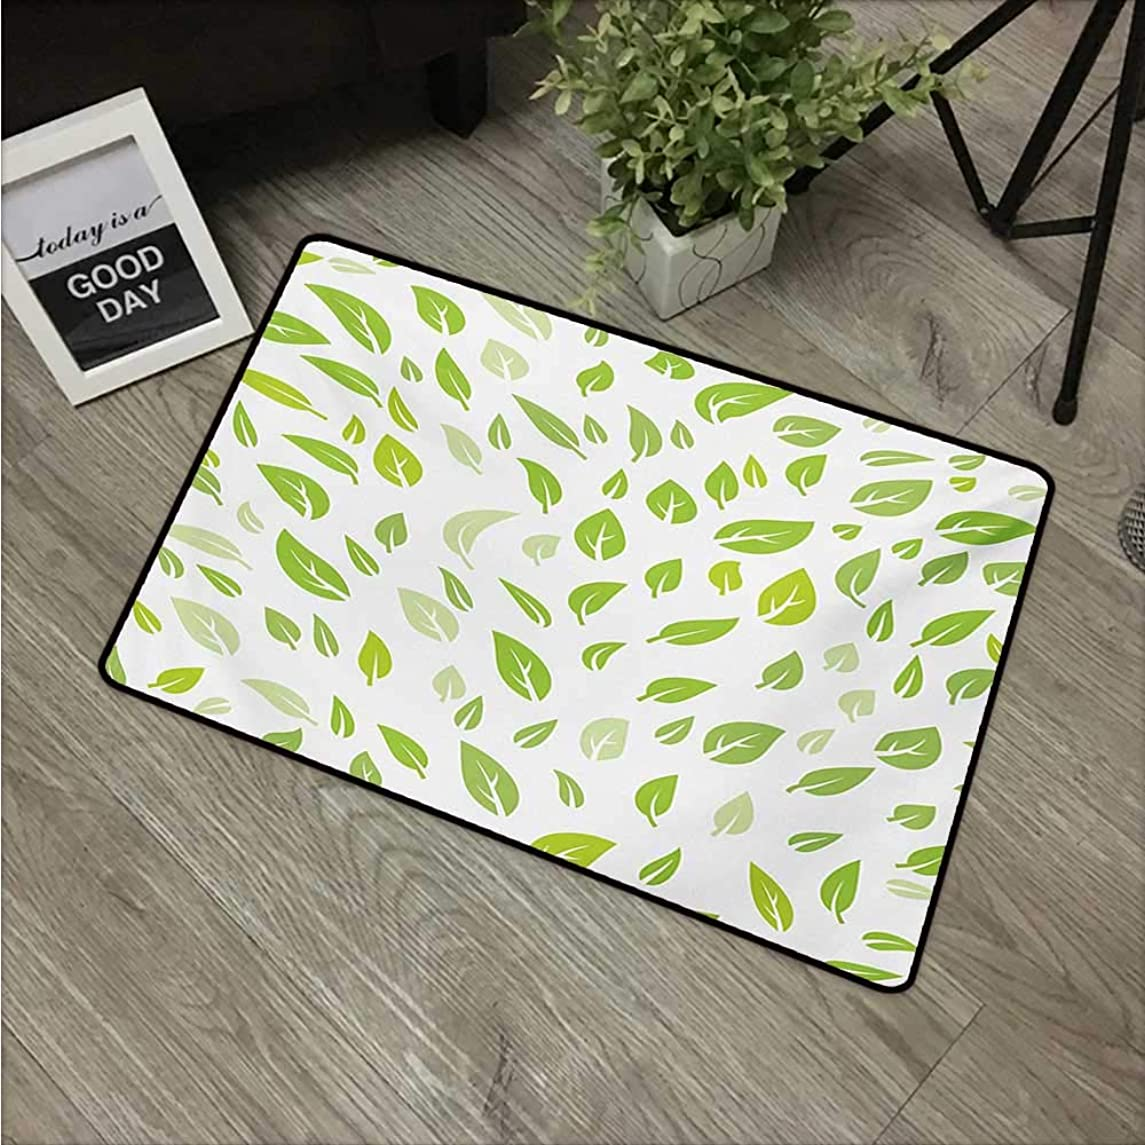 Leaf,Carpet Flooring Various Types of Green Fresh Leaves Illustration with Garden Summer Season Graphic Design W 31